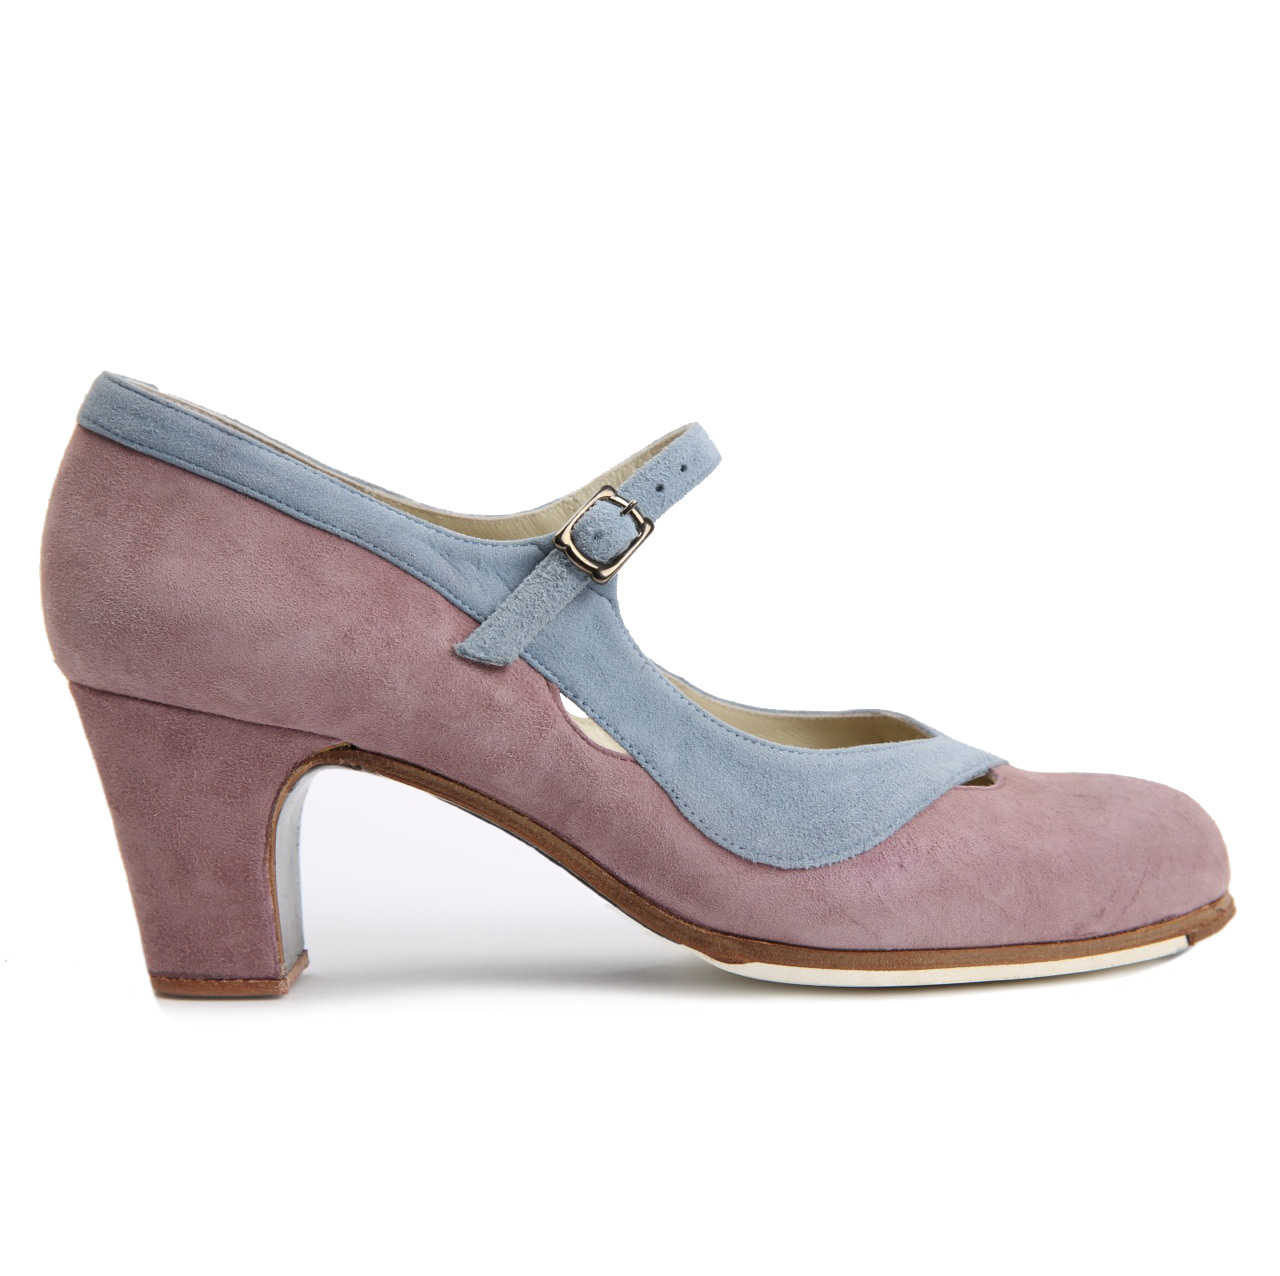 Flamenco dance Shoe Salon Correa II Suède Purple/Blue